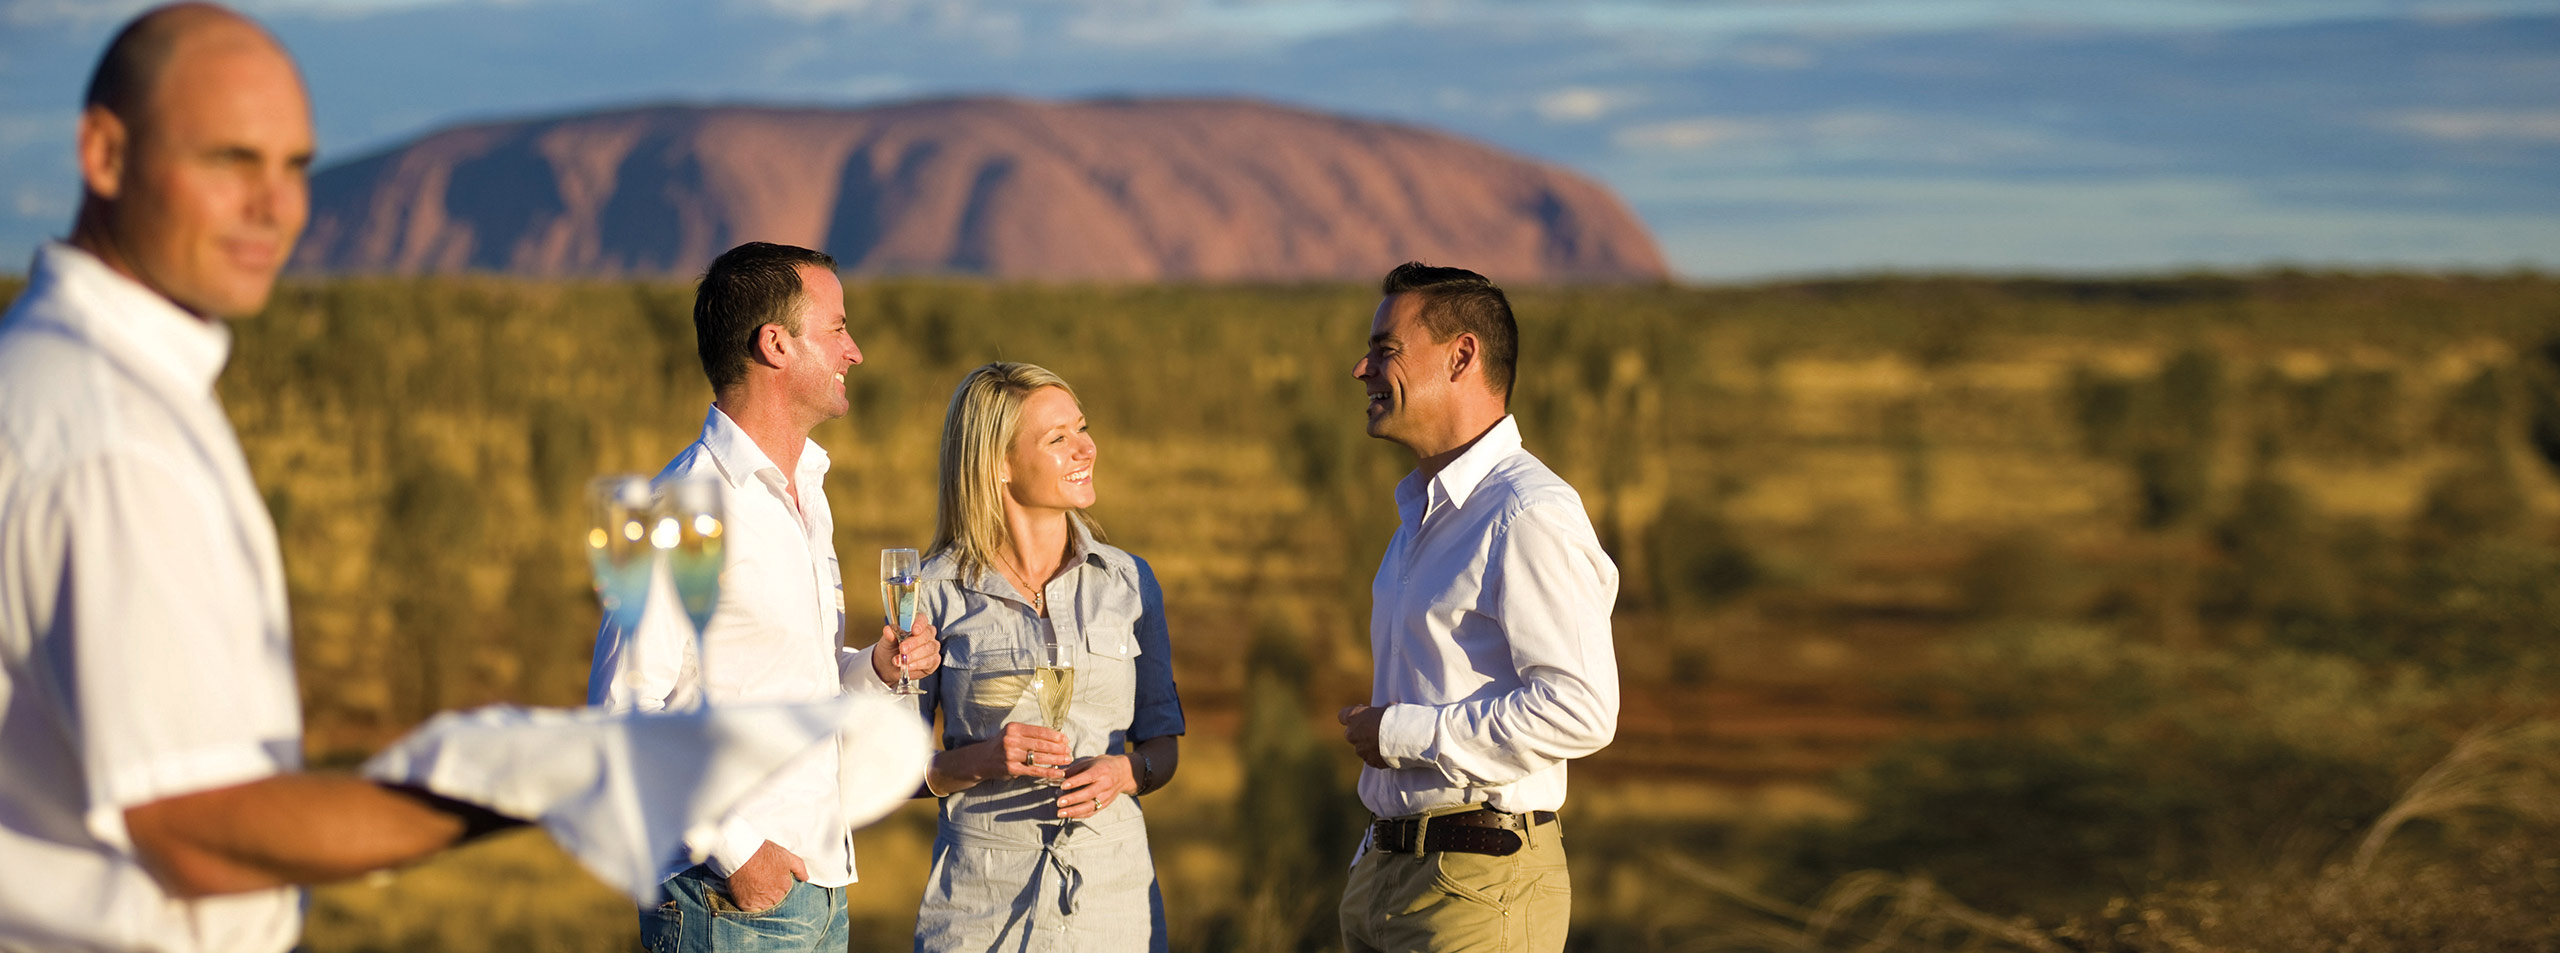 Sparkling wine at Uluru sunset